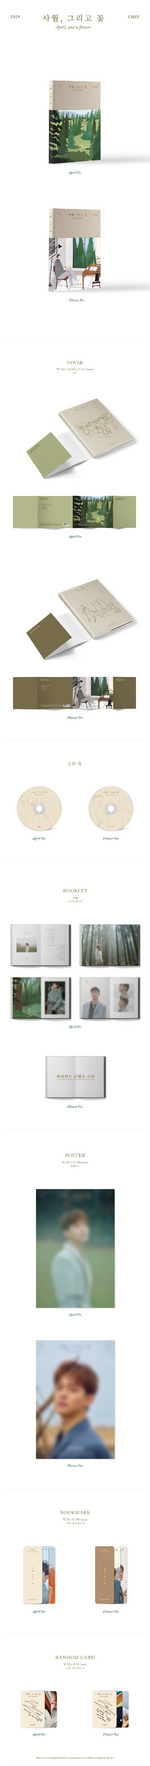 Chen April, and a Flower album packaging